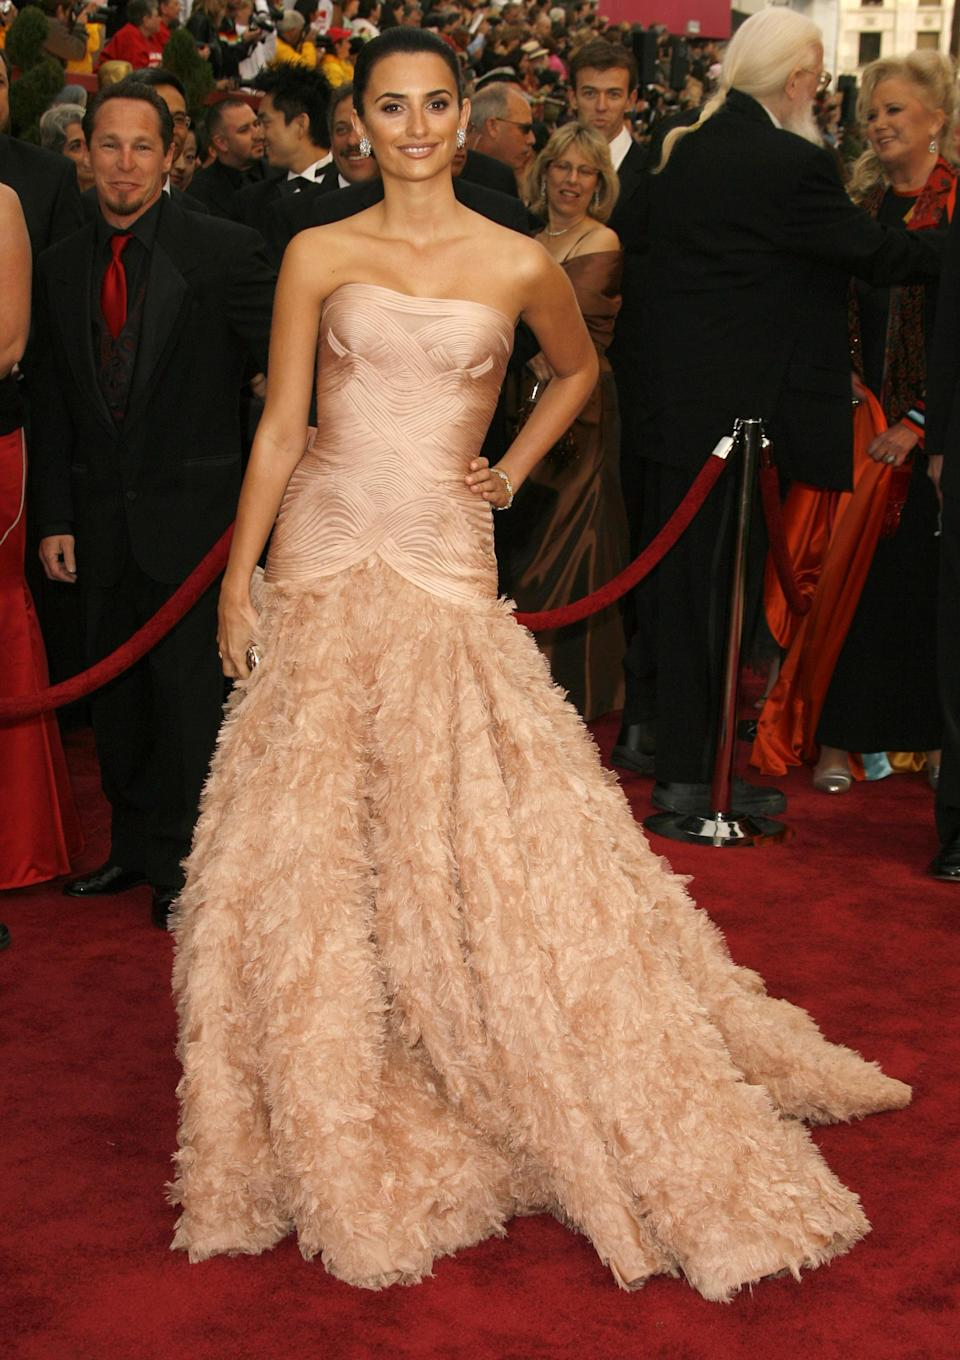 Penelope Cruz has always had strong red carpet game, but this stunning, pale pink Atelier Versace gown complete with OTT feathered train is arguably one of her best to date.